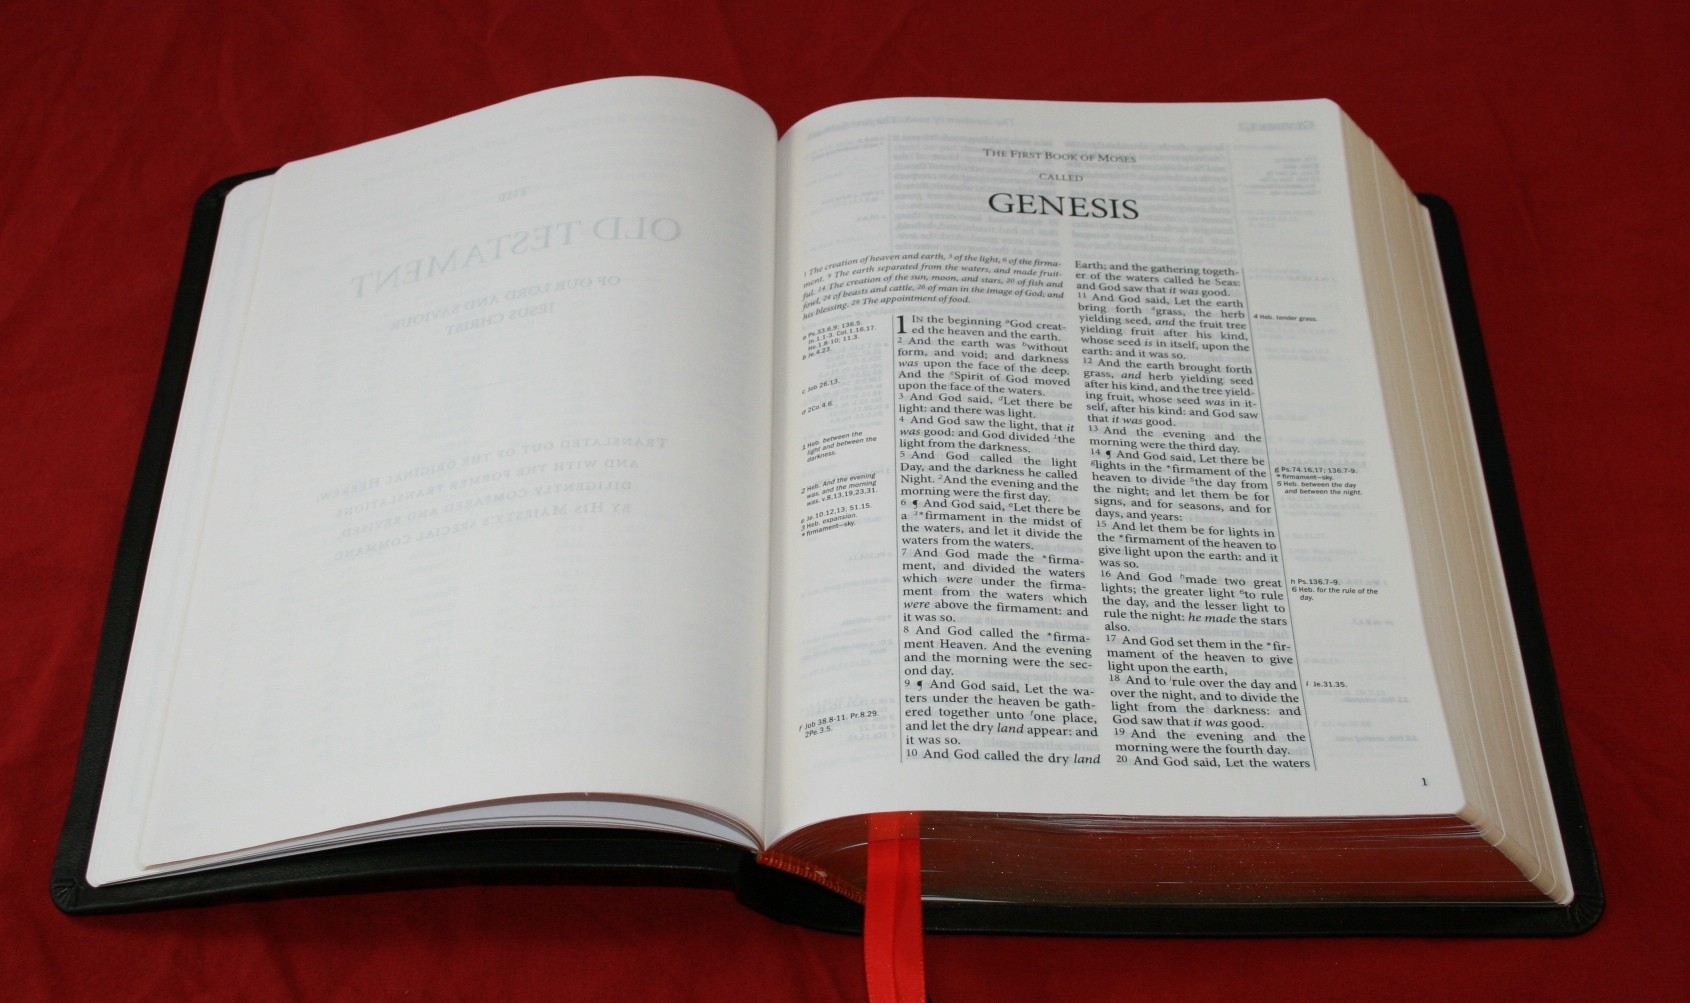 TBS Westminster Reference Bible Review